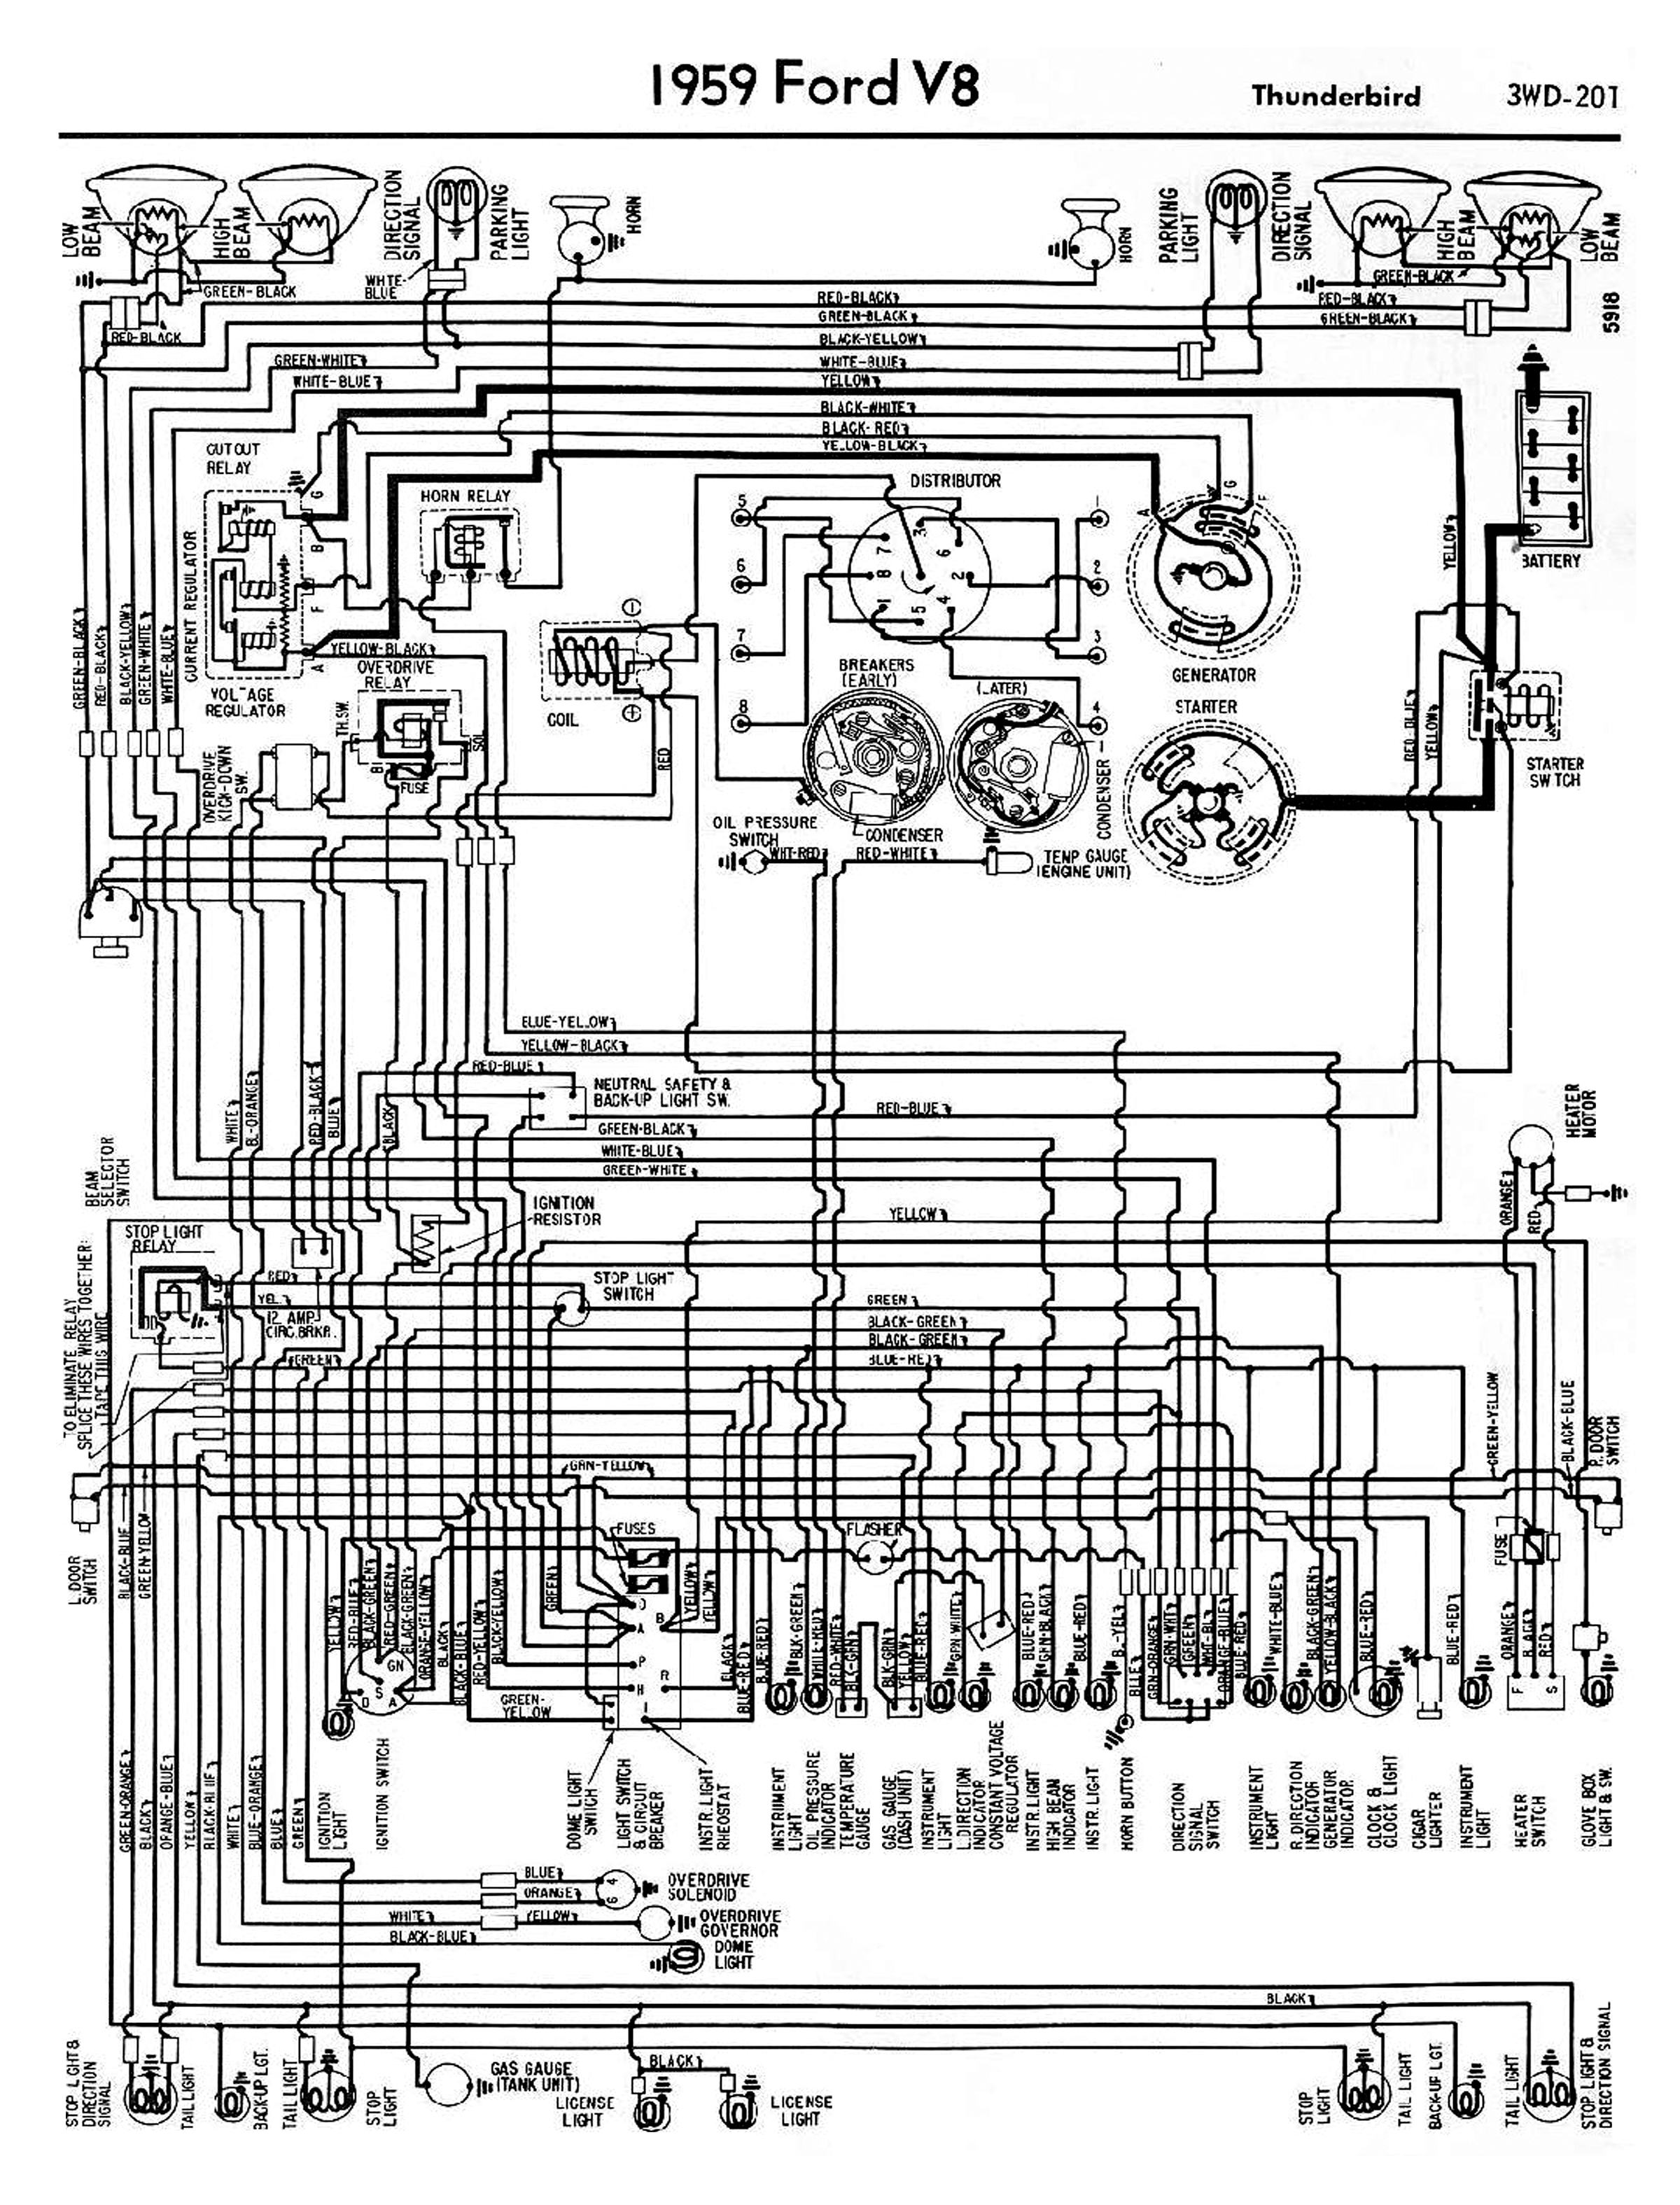 Wiring Diagram on 1958 Ford Wiring Diagram